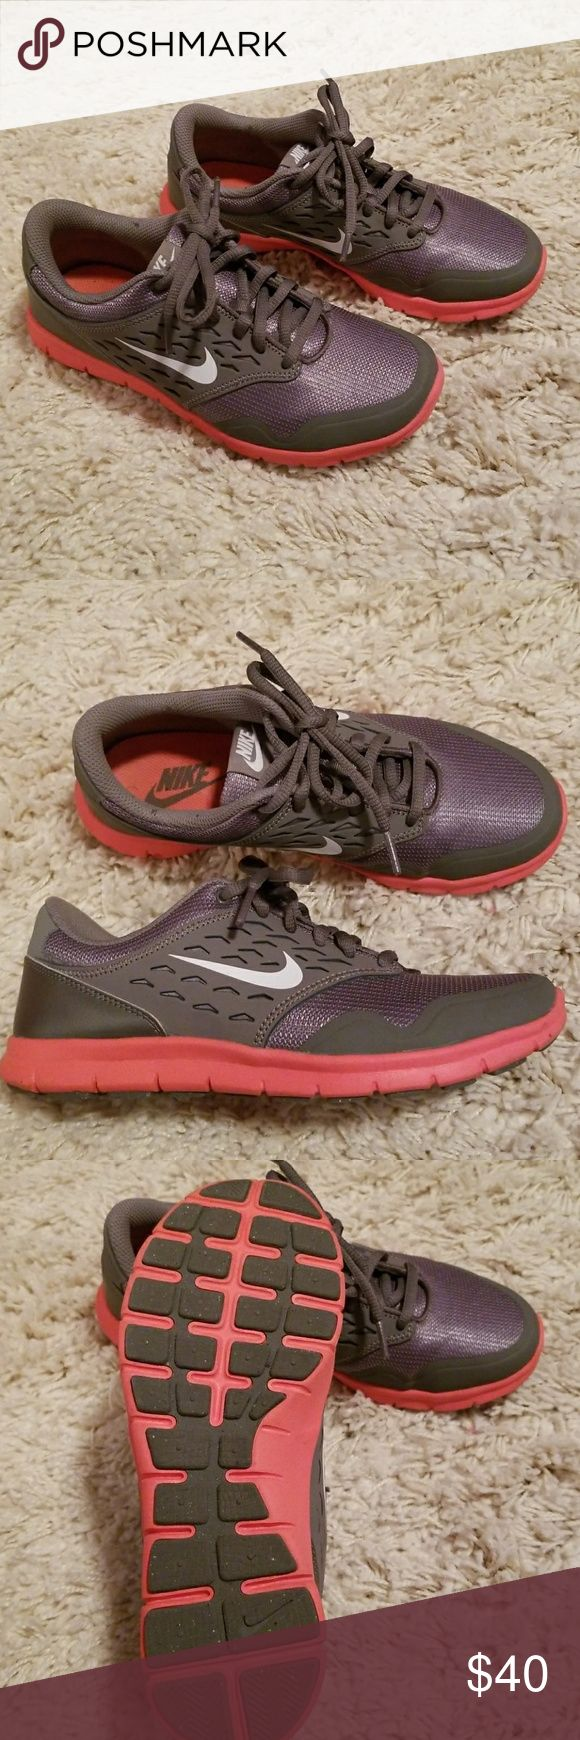 Nike Orive NM running shoe Barely worn/like new Nike Orive NM running shoe. Excellent used condition! Happy to post more pics upon request. Nike Shoes Sneakers http://feedproxy.google.com/fashionshoes1